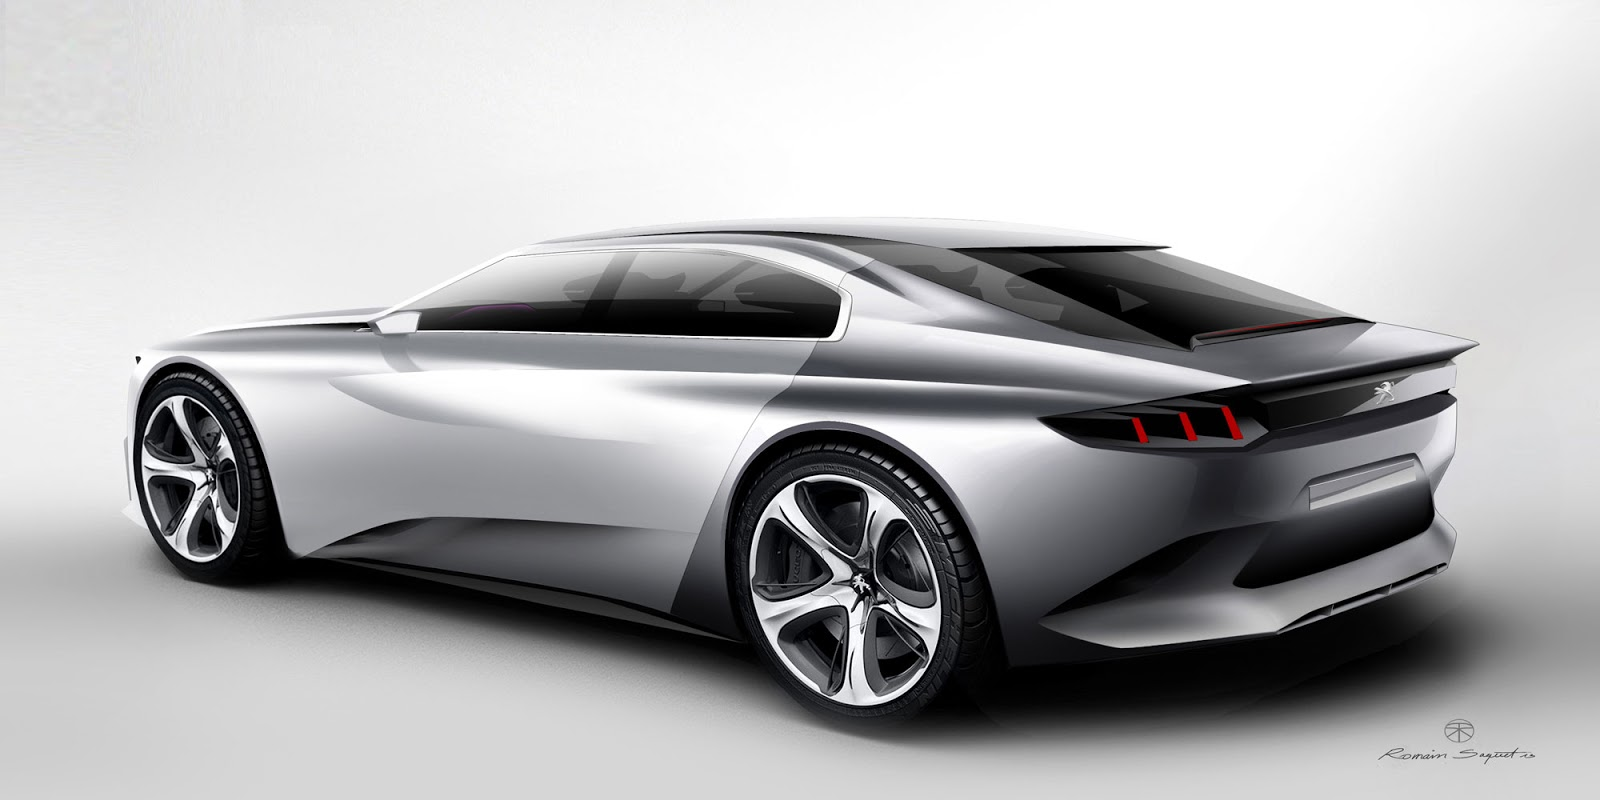 Peugeot Exalt concept rear view, render by Romain Saquet